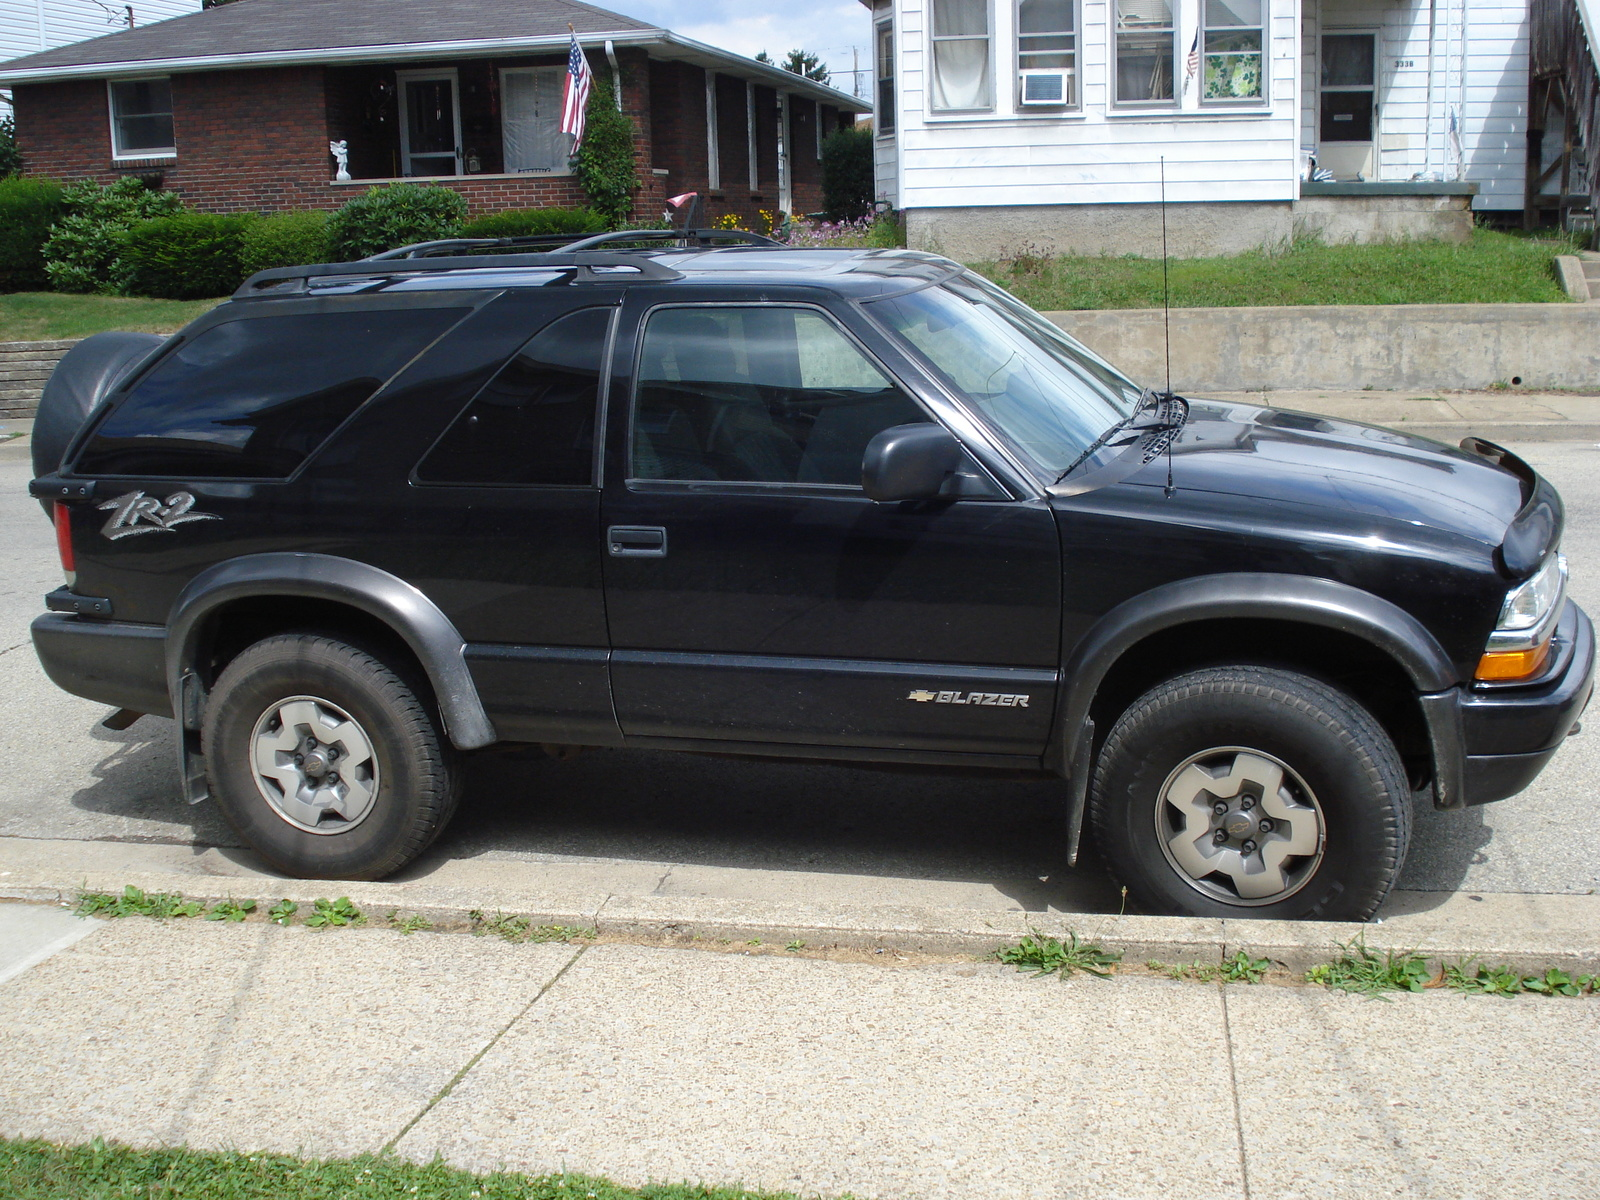 Picture of 2004 Chevrolet Blazer 2 Dr LS ZR2 SUV